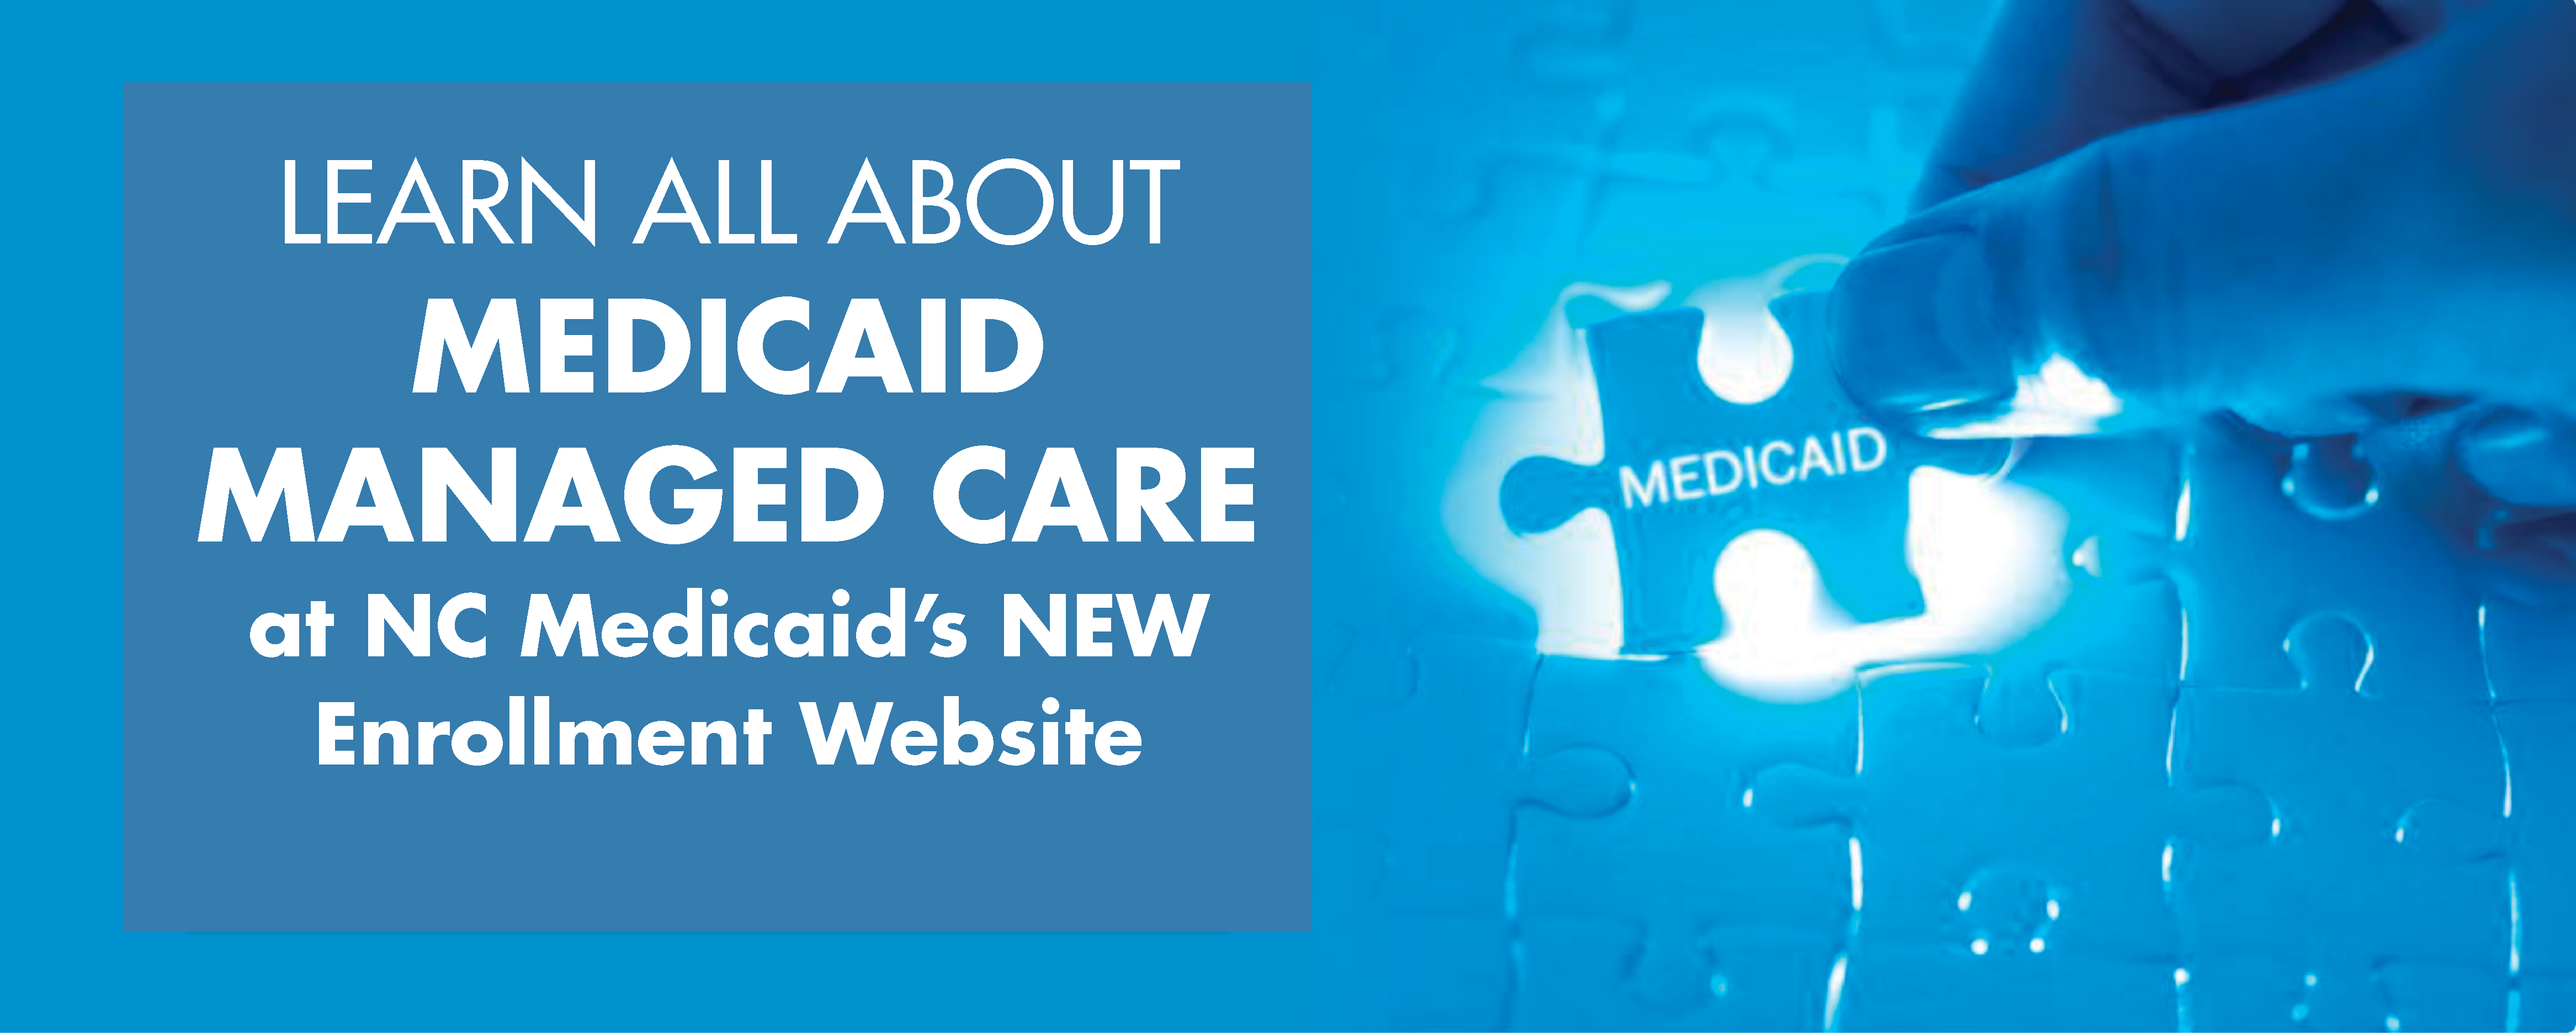 Learn all about Medicaid Managed Care at NC Medicaid's NEW Enrollment Website